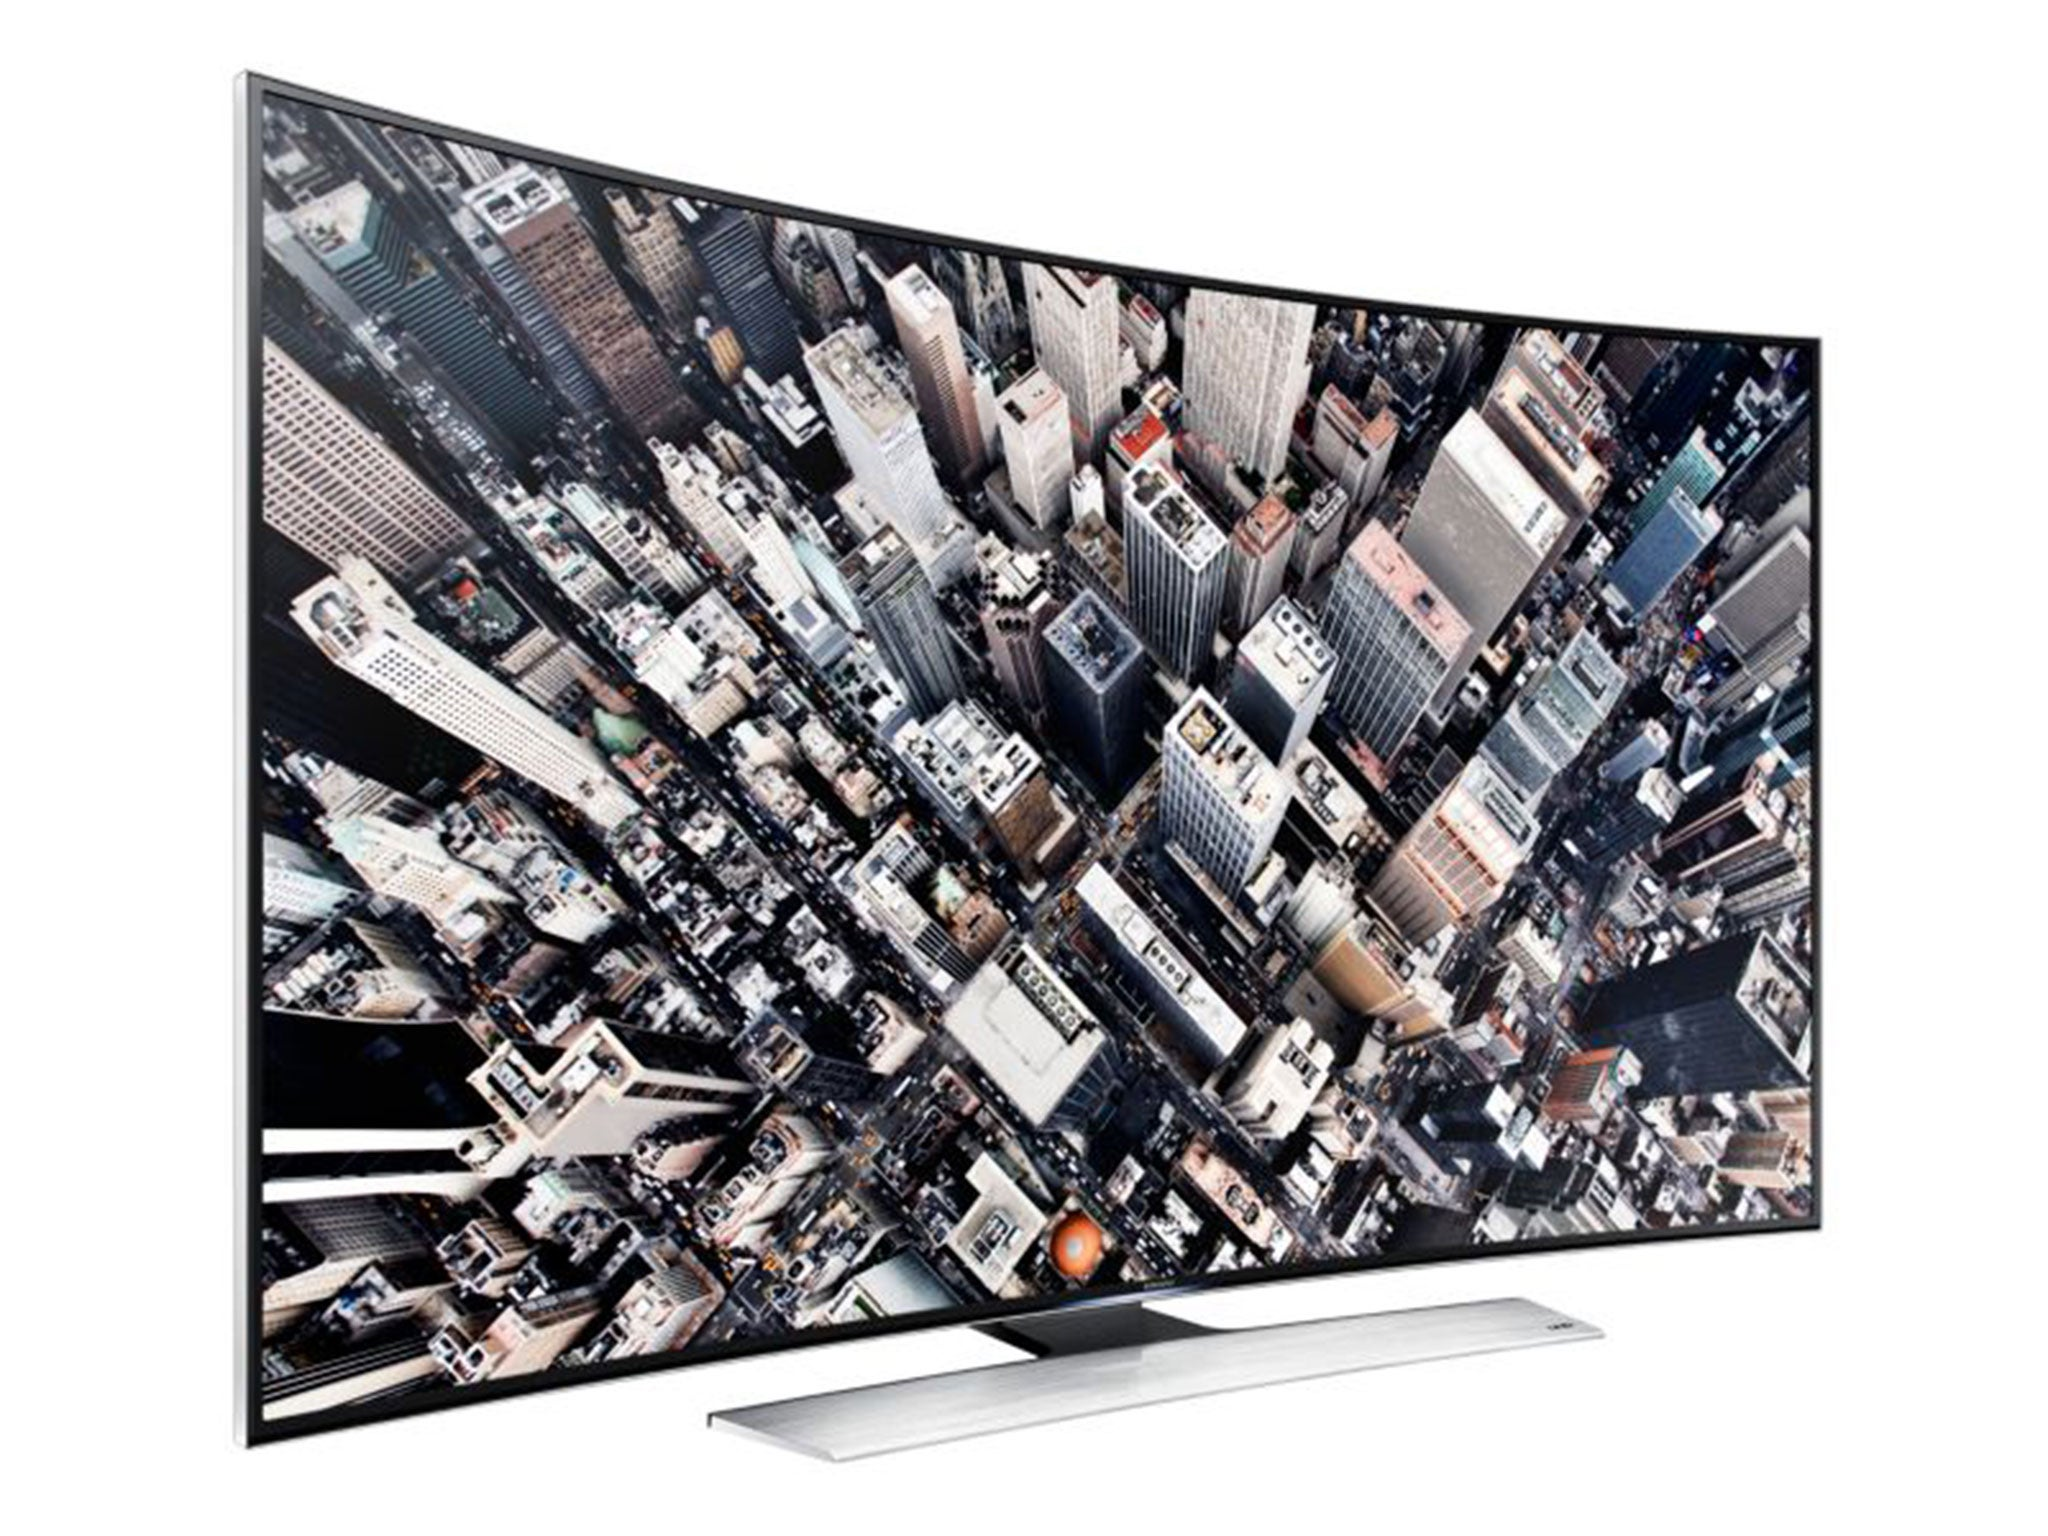 Do you need a curved TV? We talk to Samsung about their newly launched curved sets